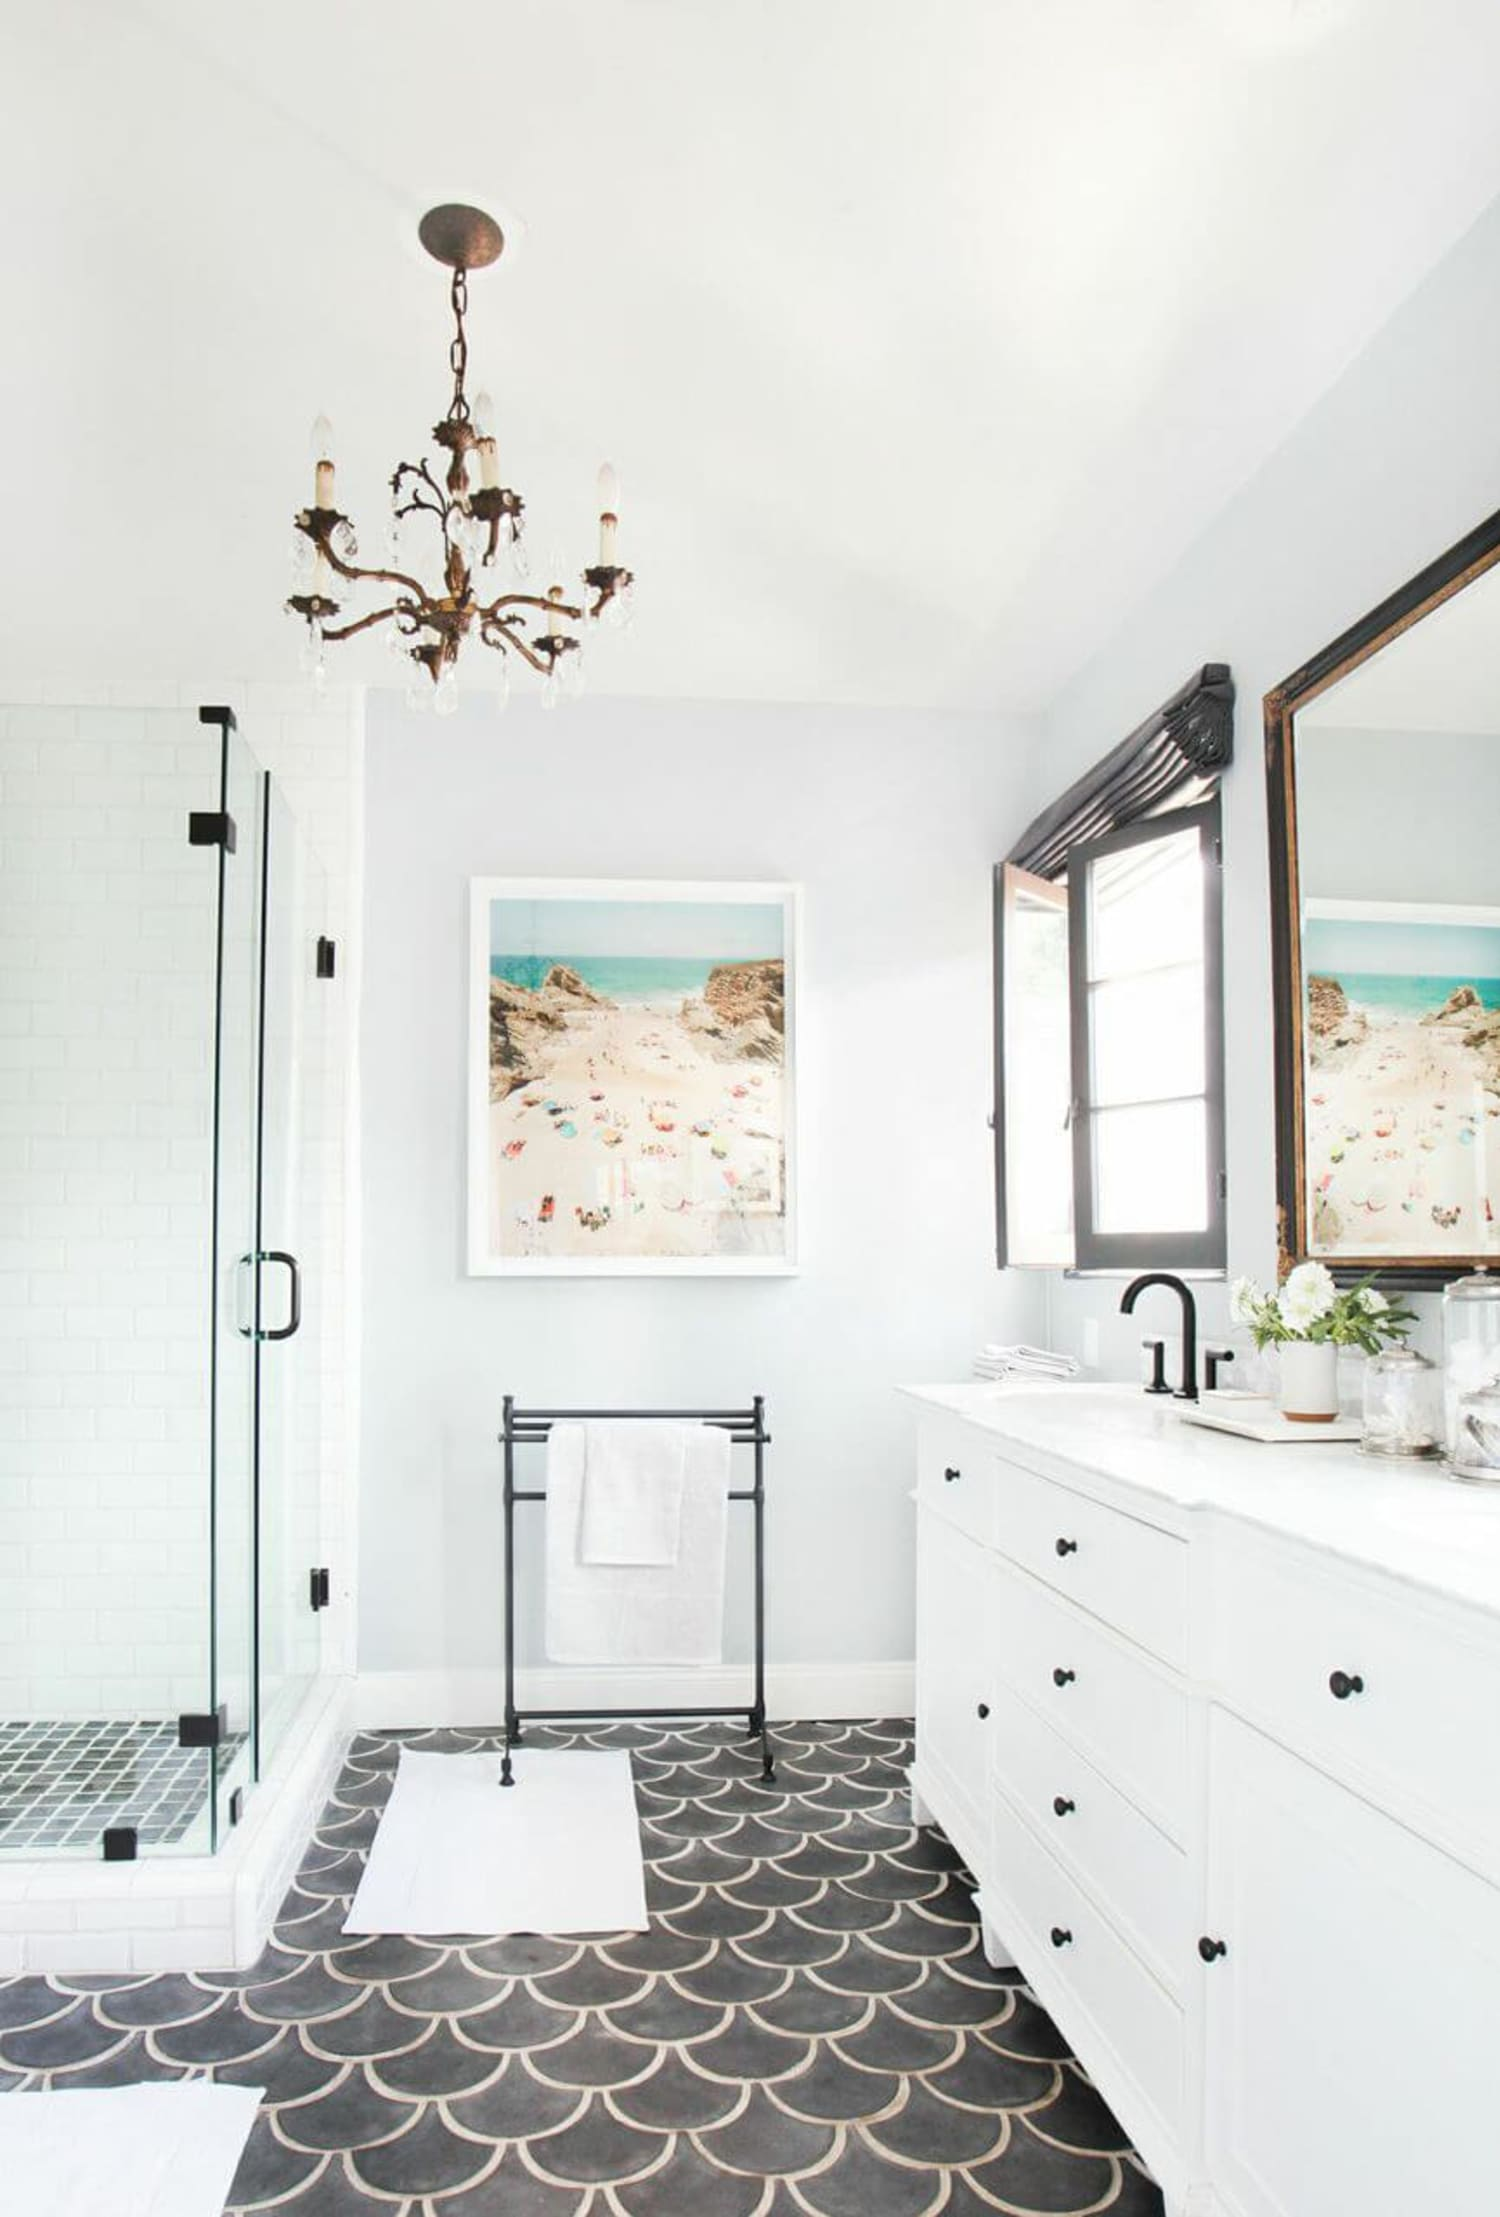 20 Crisp, Clean White Bathroom Ideas You'll Want to Try Immediately